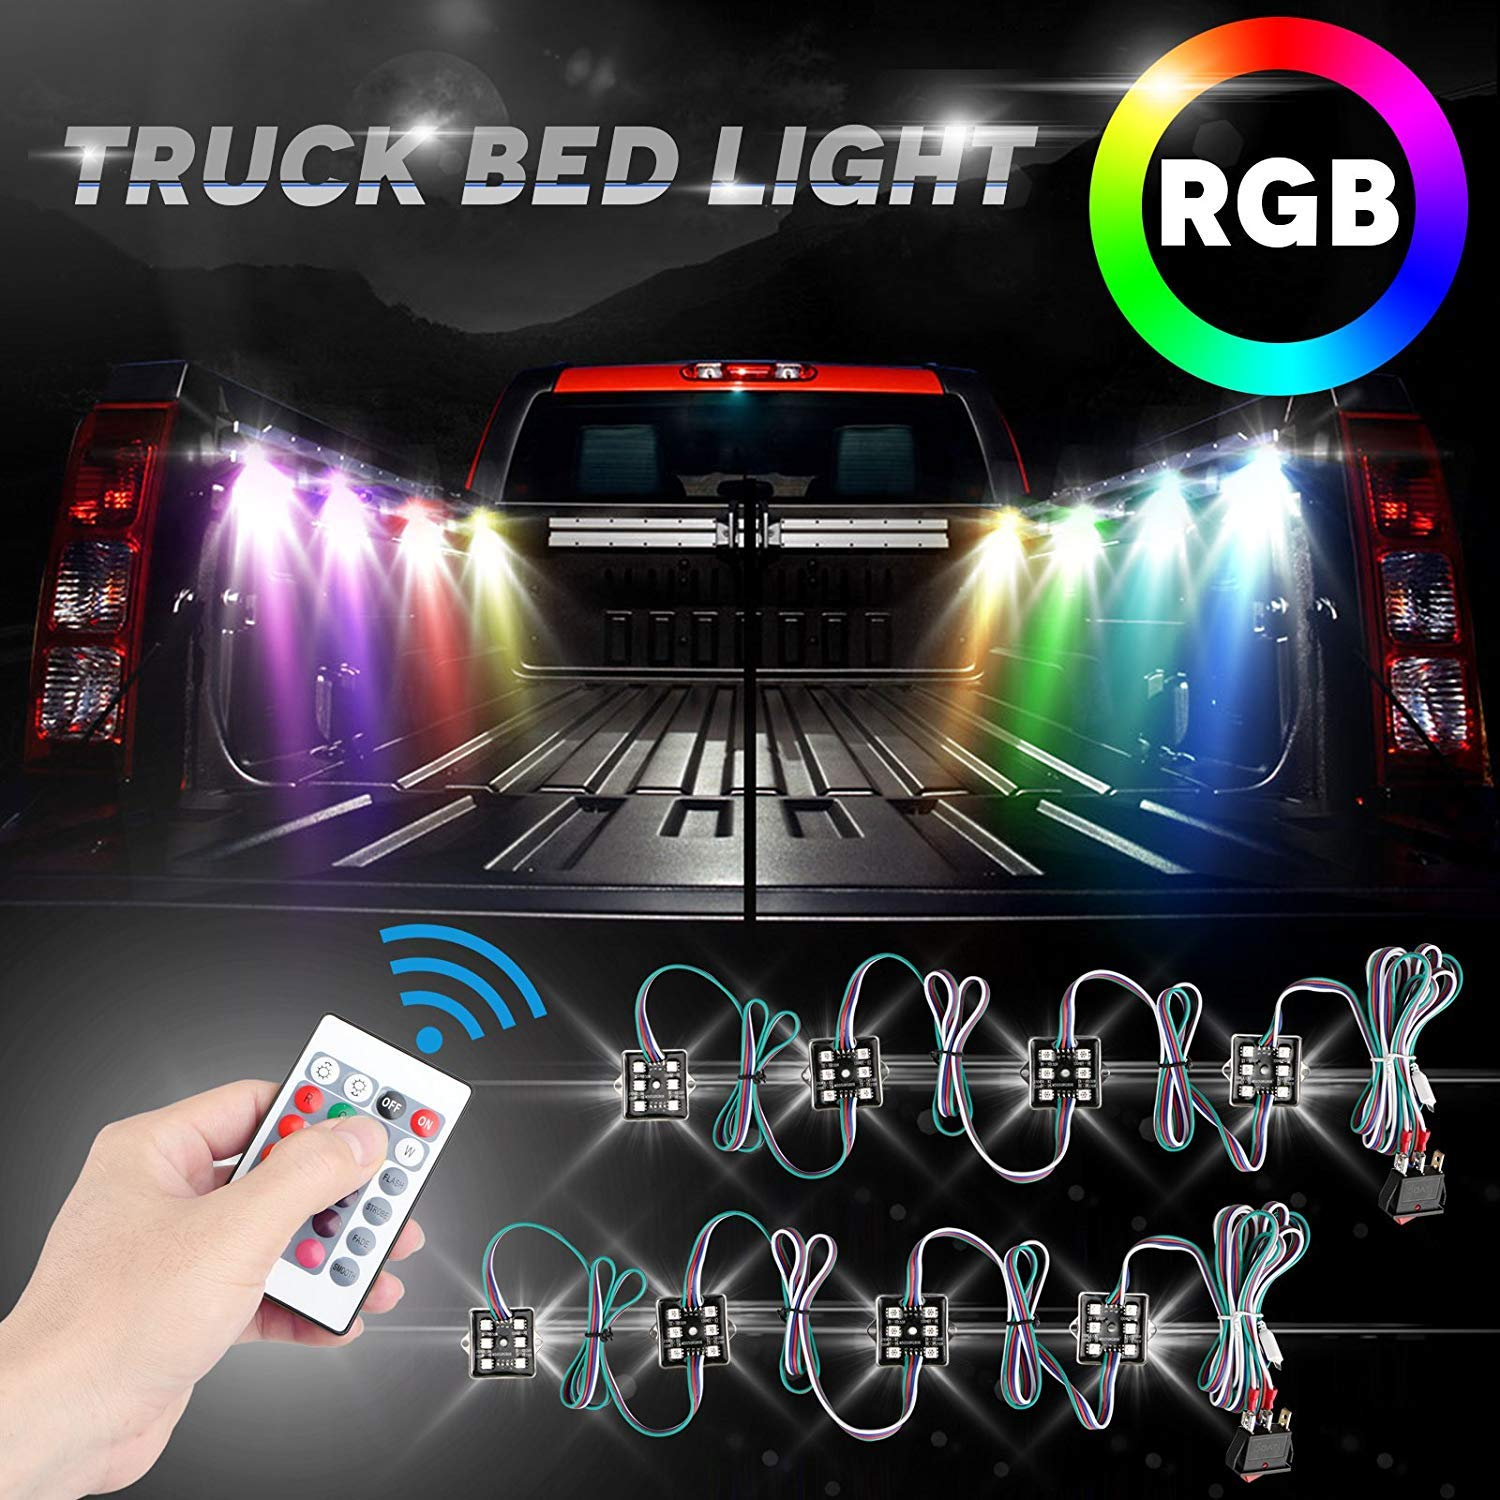 LED Truck Bed Lights Linkstyle 2Pcs LED Rock Lights, 48 LEDs RGB Truck Bed Cargo Lights with Remote Control, On/Off Switch & IP67 Waterproof for Pickup Truck, RV, SUV, Boats, Unloading Cargo Area